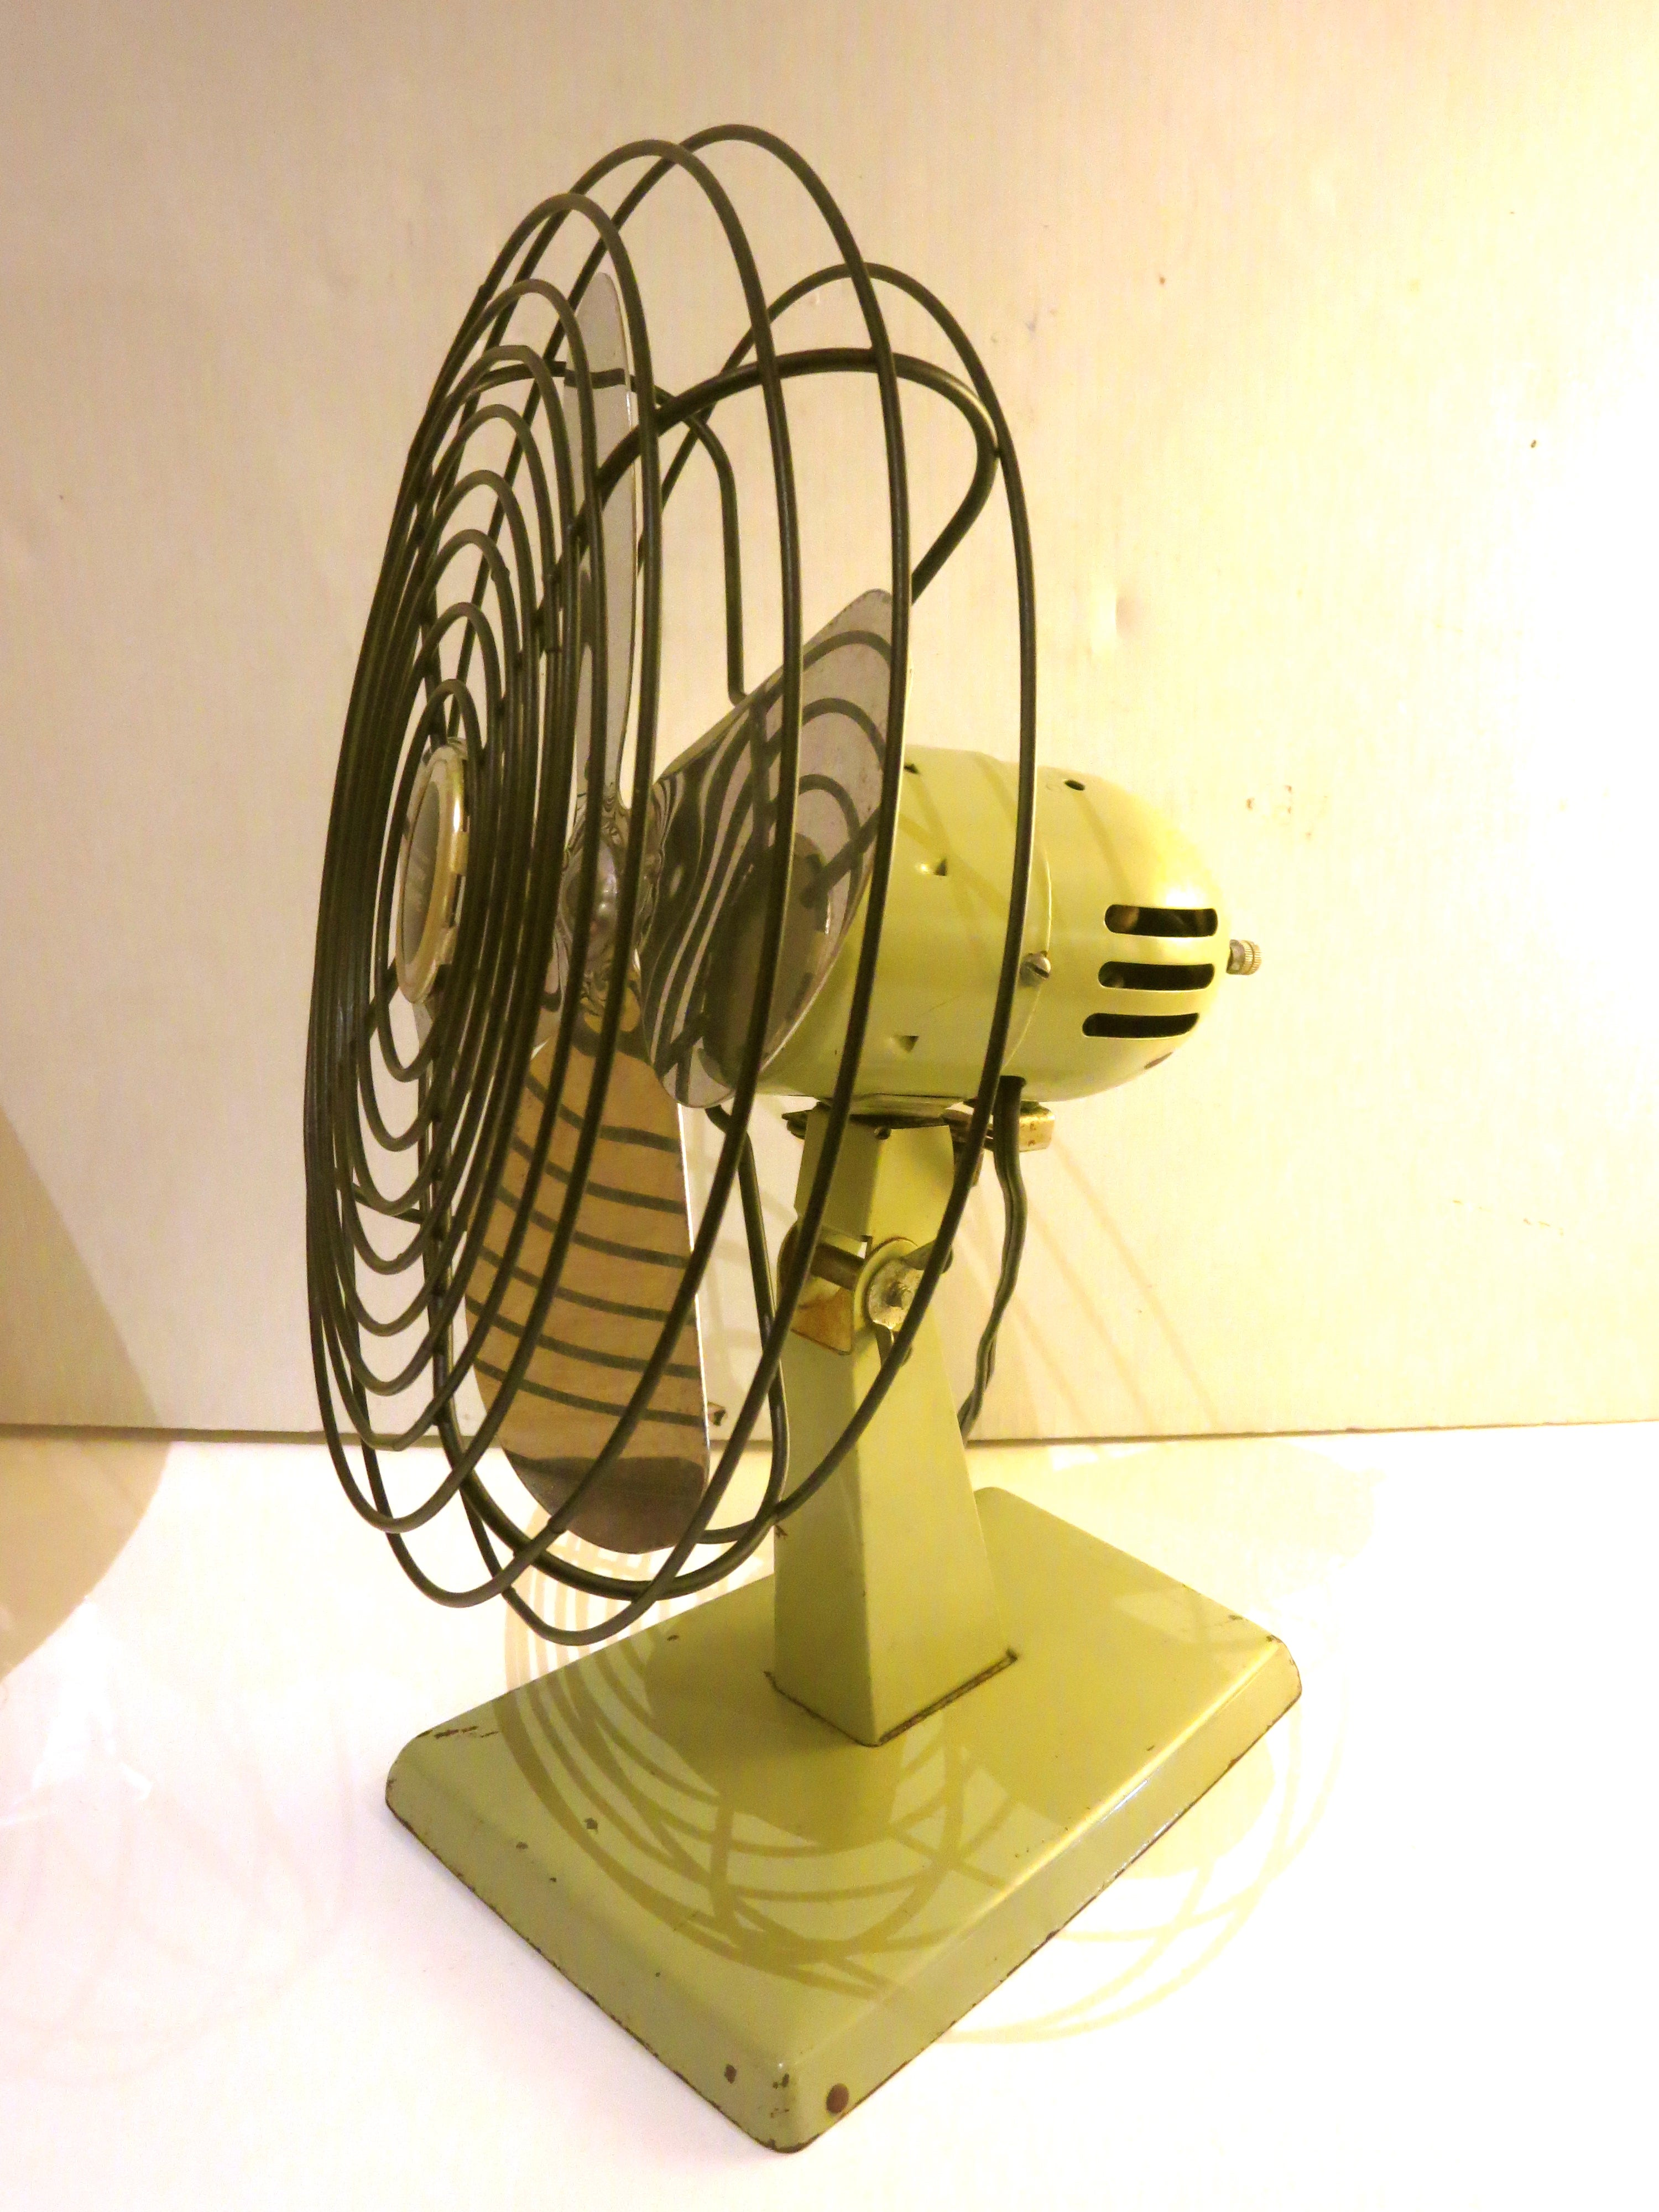 Decorative Wall Mounted Fans - Photos House Interior and Fan ...